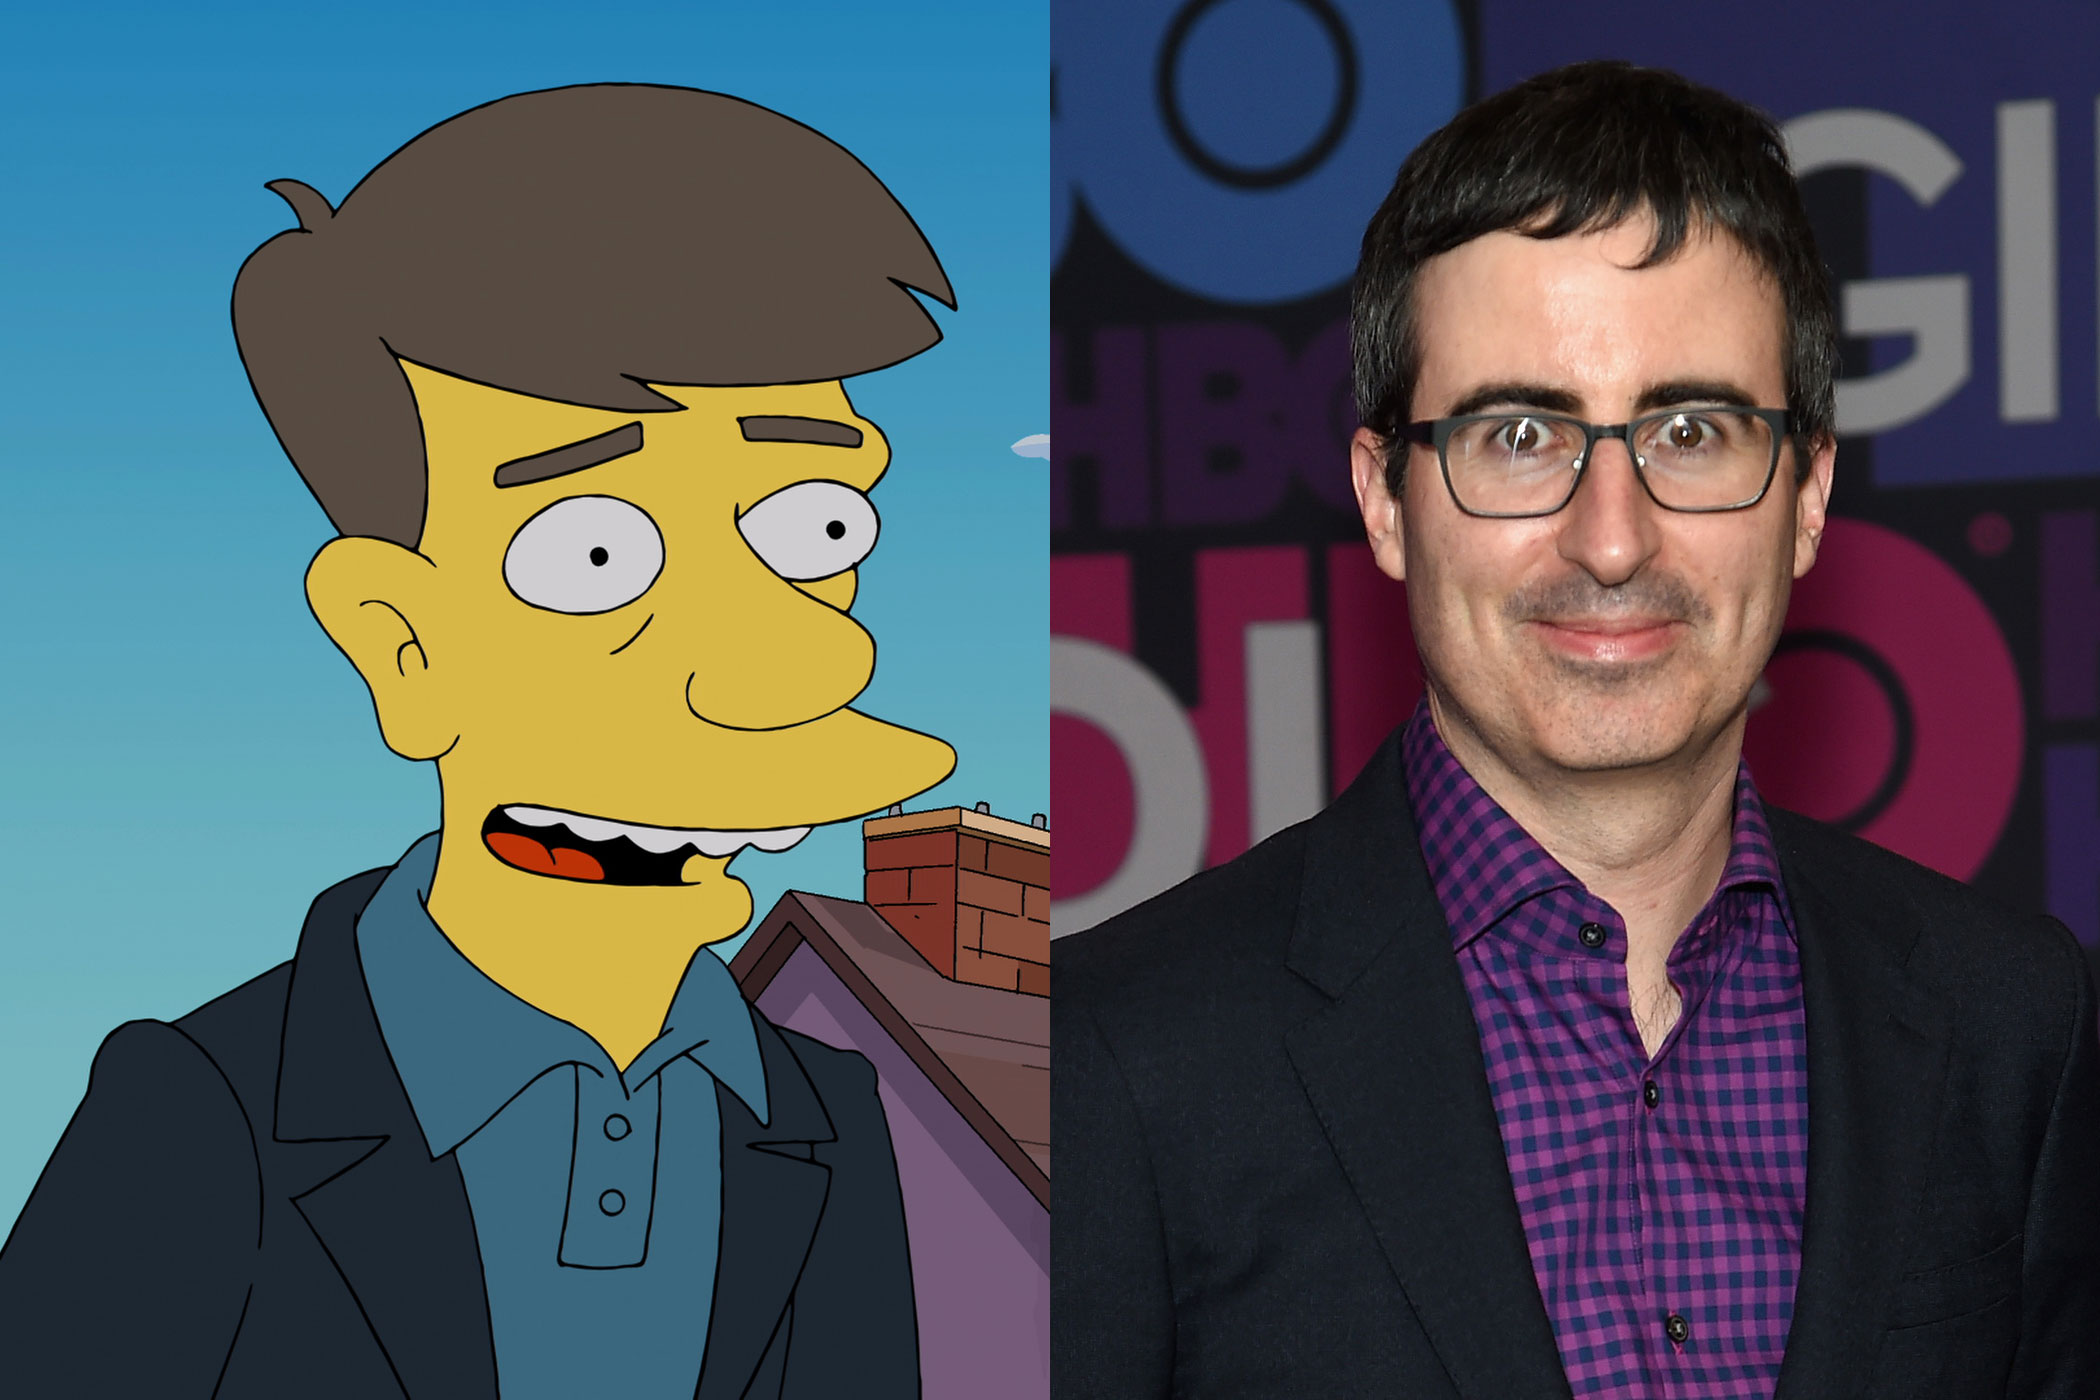 John Oliver had a brief cameo on <i>The Simpsons</i> as Booth Wilkes-John, the Simpsons' British neighbor.